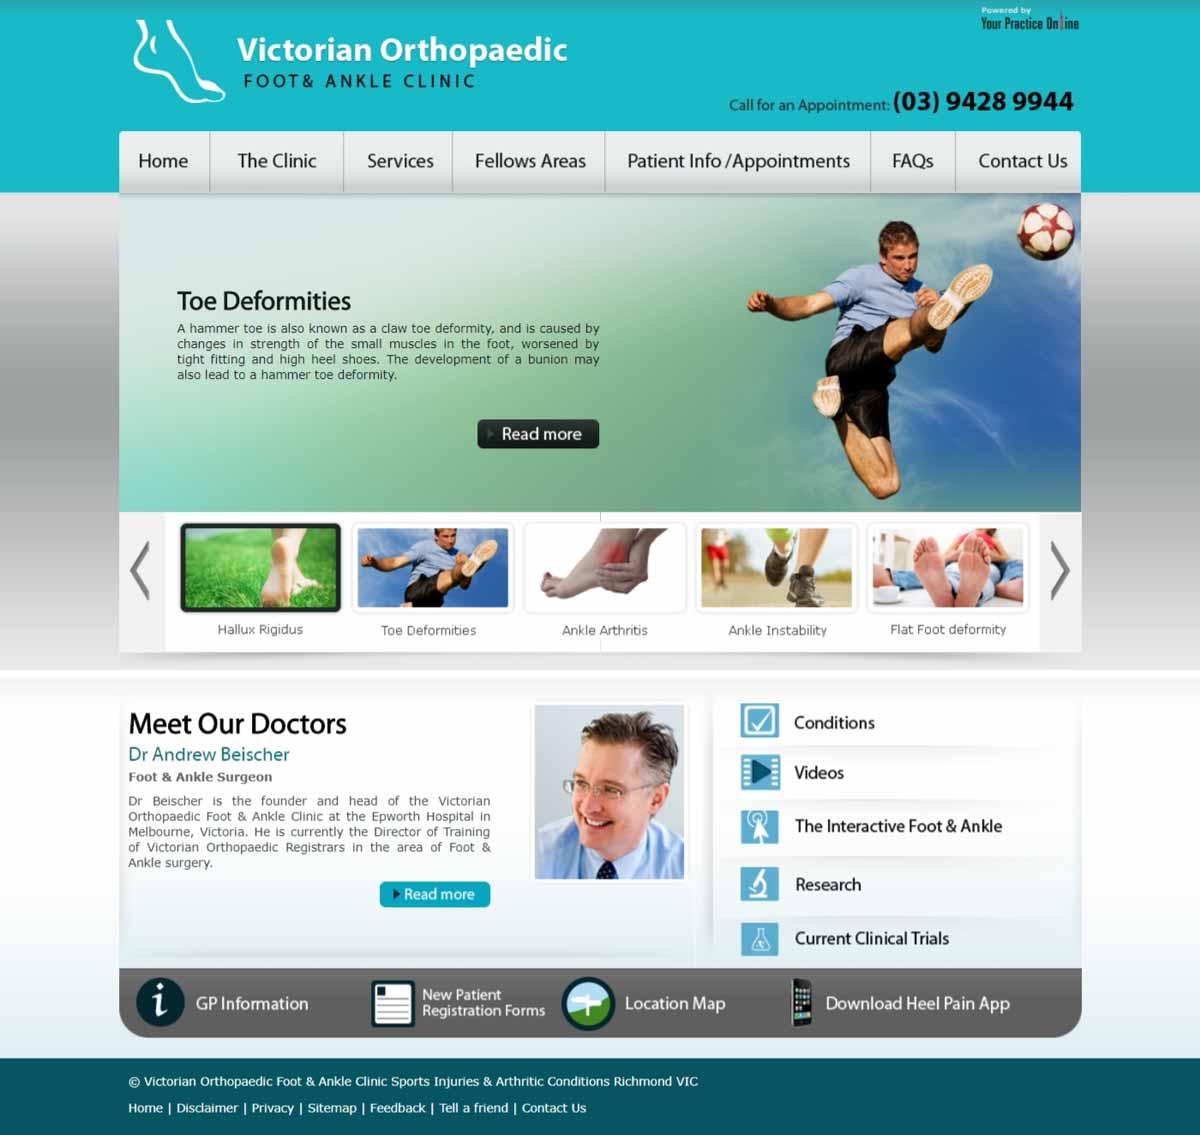 Website for Orthopaedic Foot & Ankle Surgeons